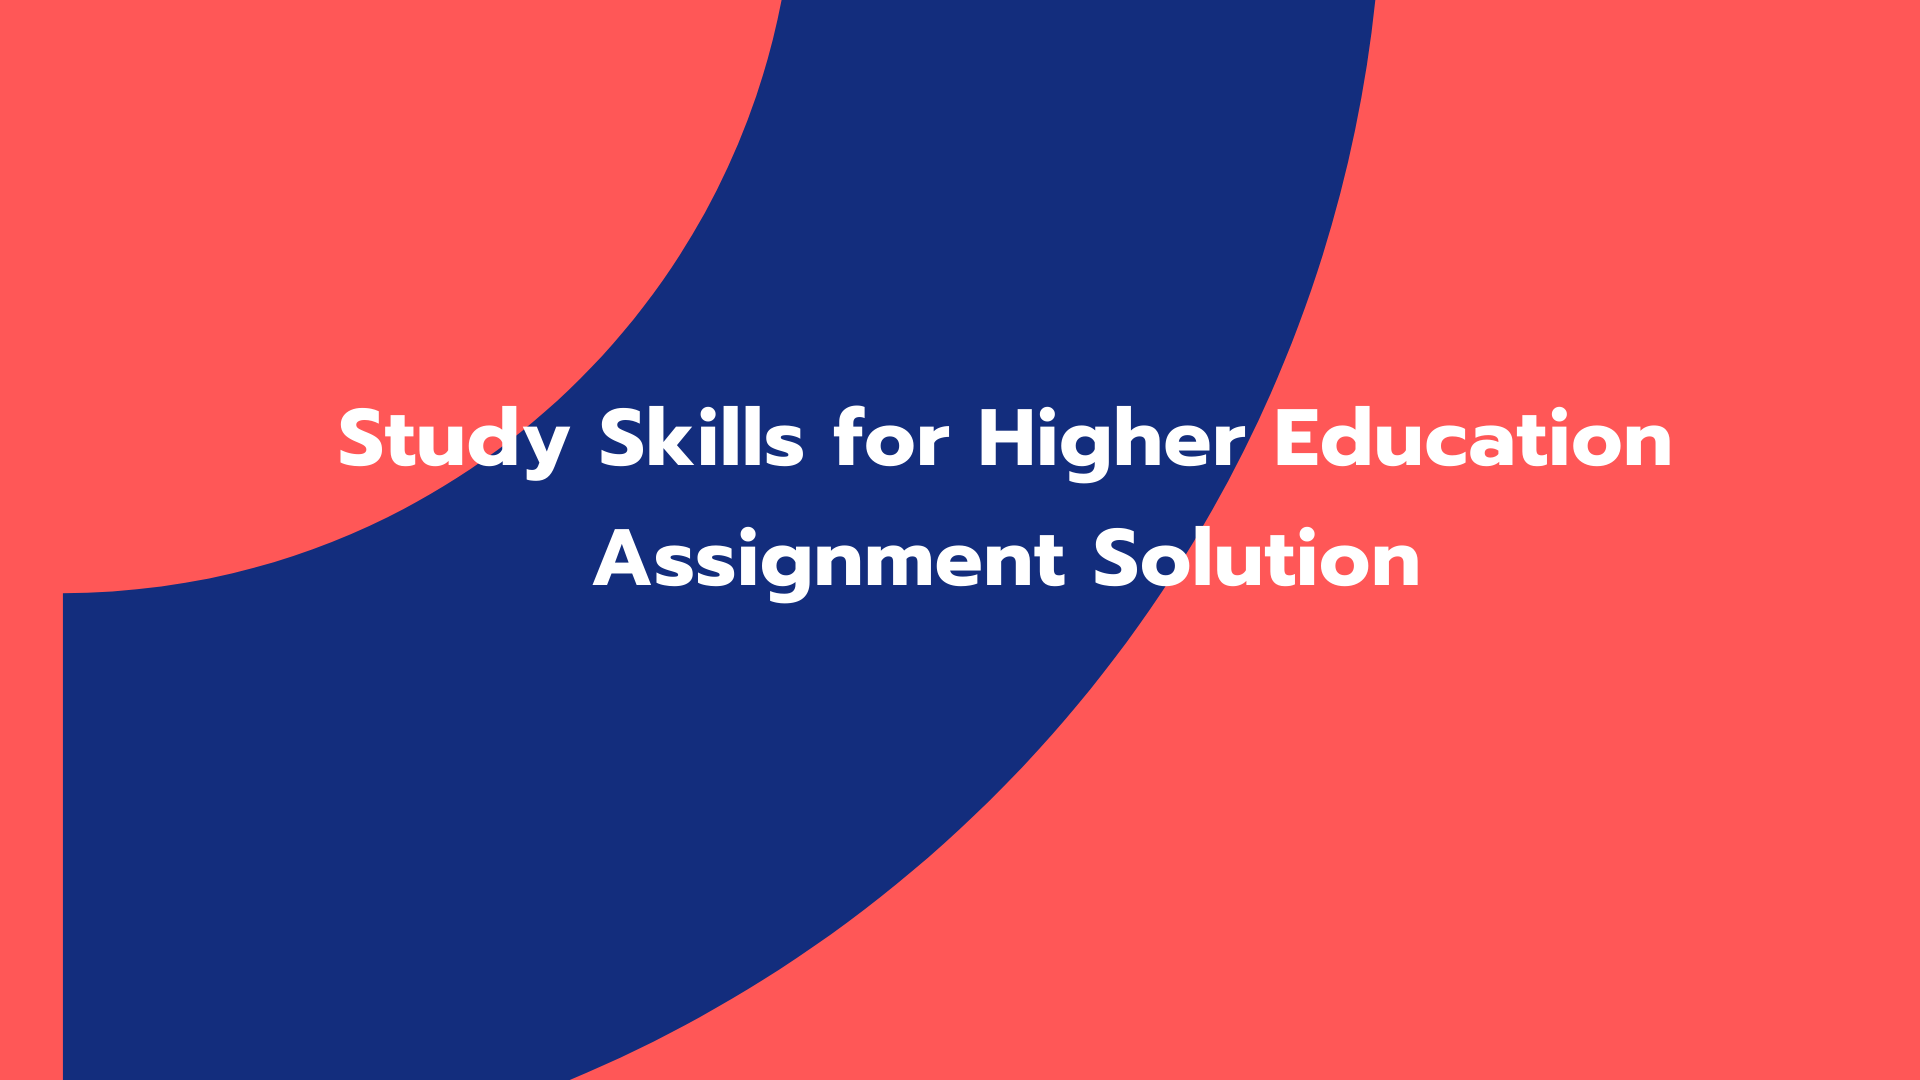 Study Skills for Higher Education Assignment Solution